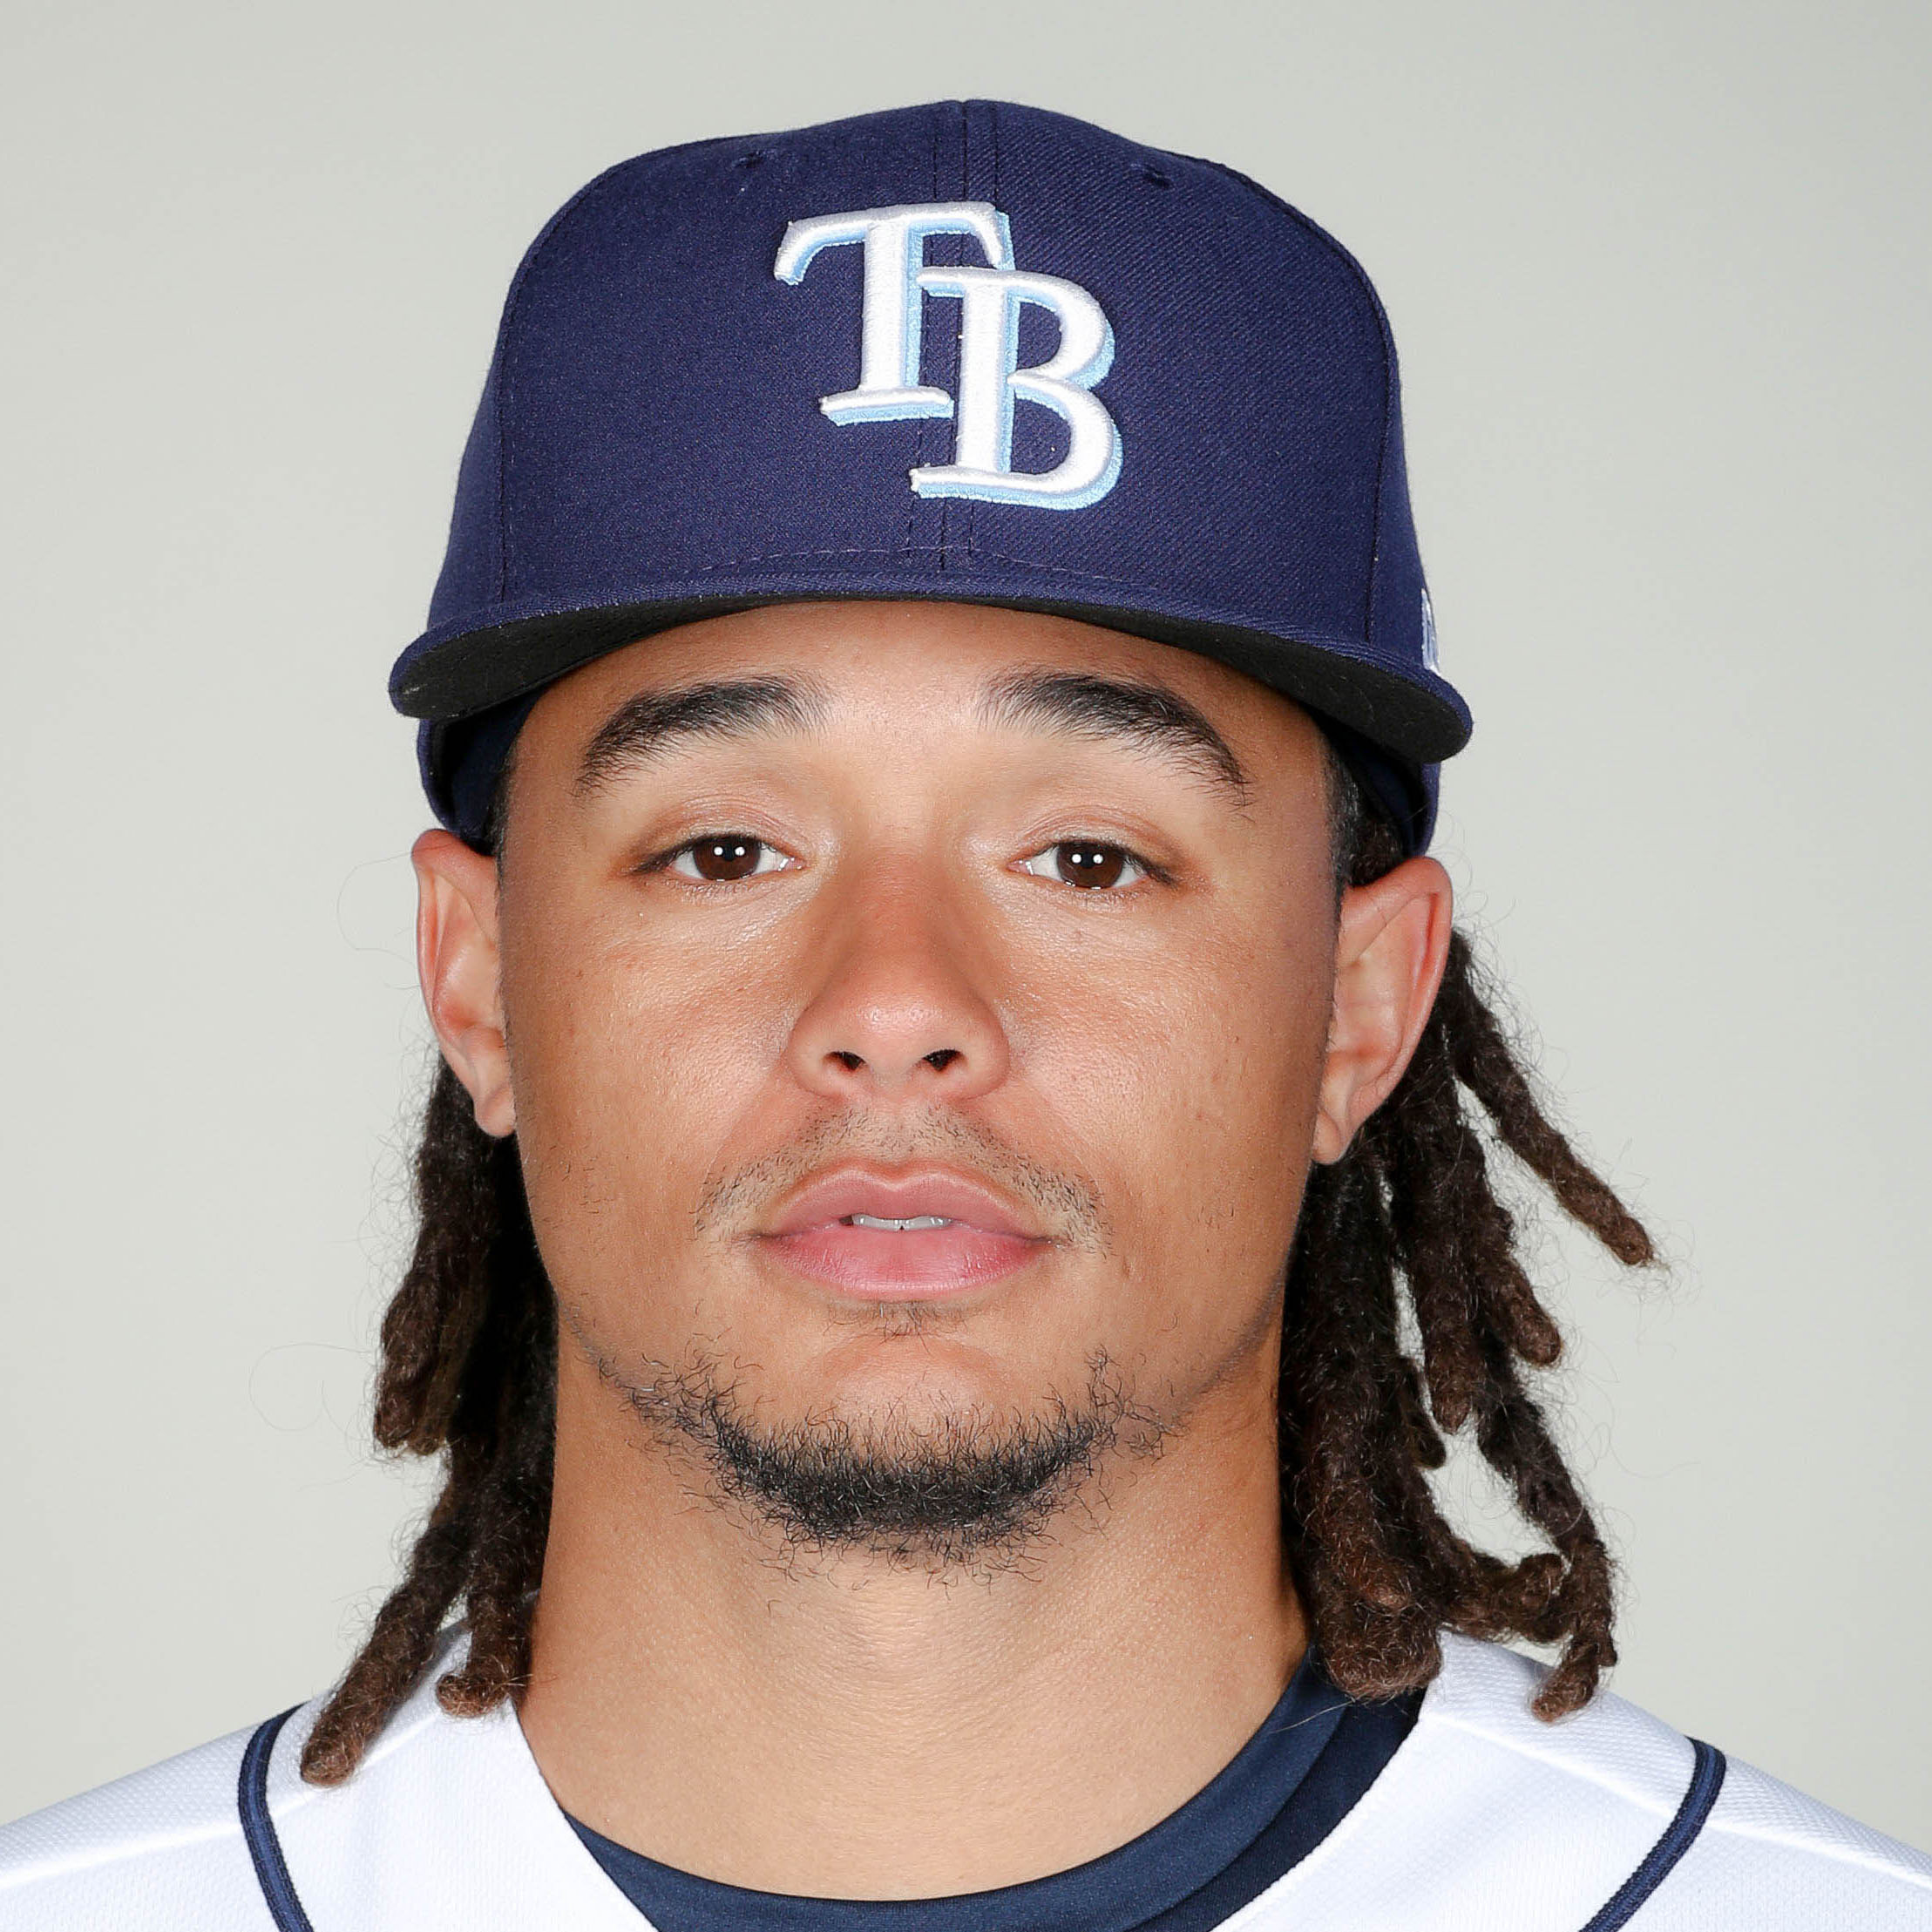 Chris Archer (R) Headshot